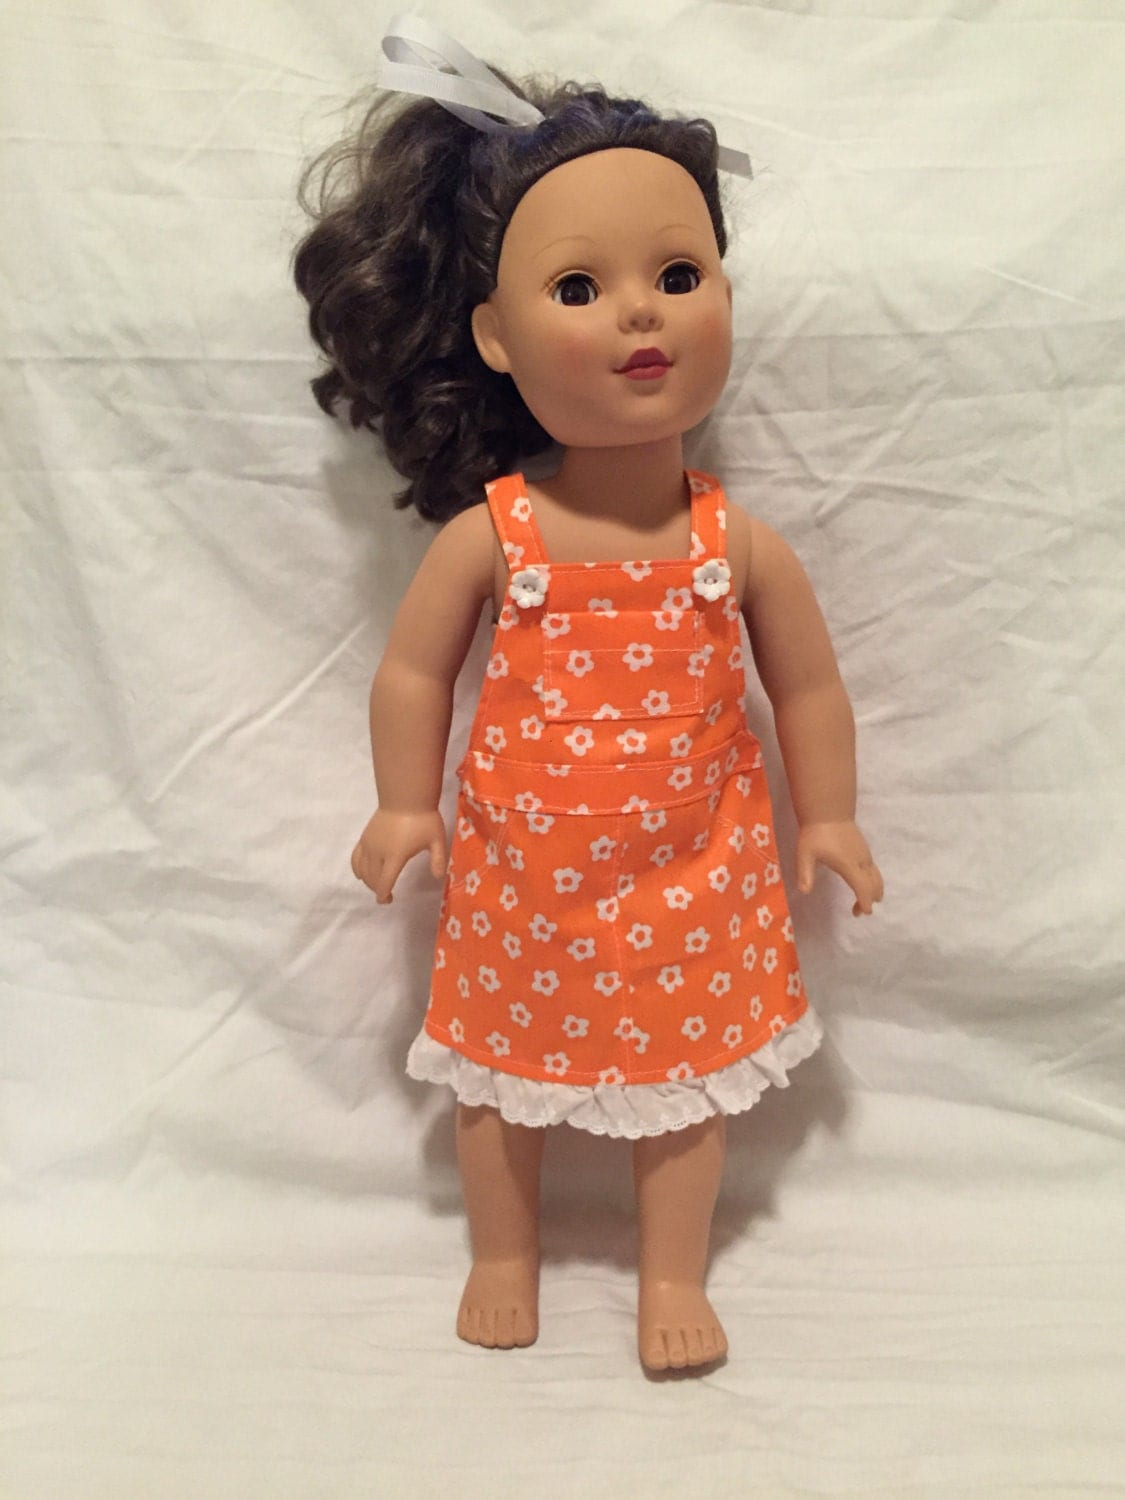 Your little girl is a living doll, and you can reflect her unique aspects and individuality with her own doll from